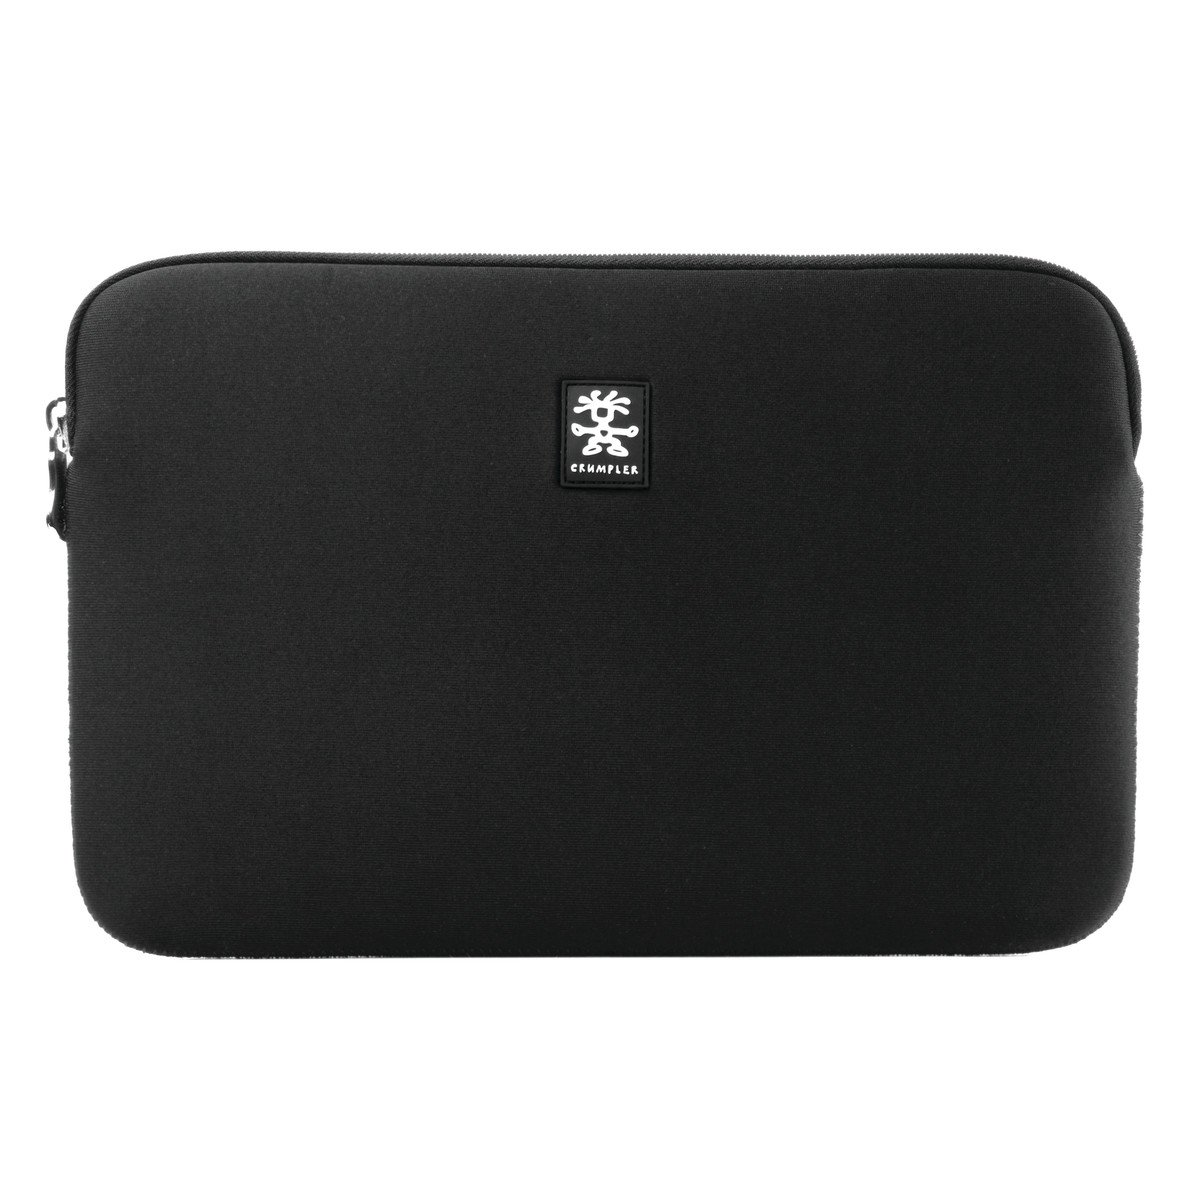 Crumpler The Base Layer Soft Case for Laptop 33.02 cm (13 Inch) Black/rust Red BL13-001